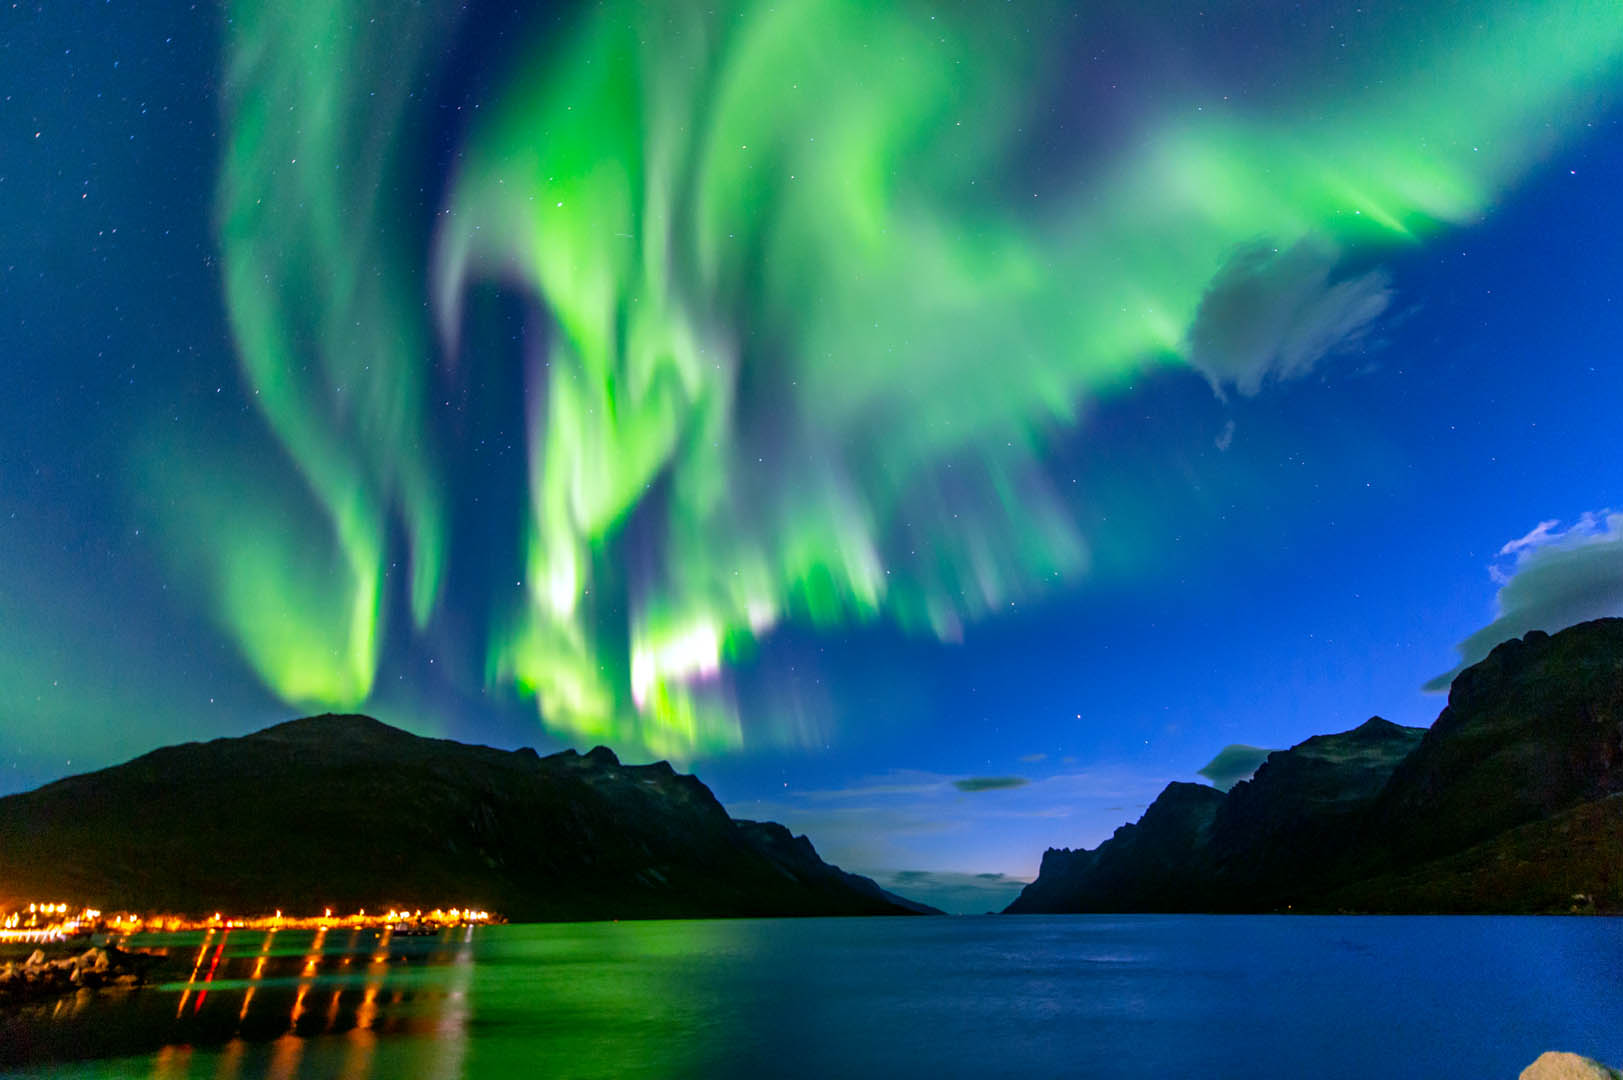 Picture of the northern lights in Tromsø, Norway.